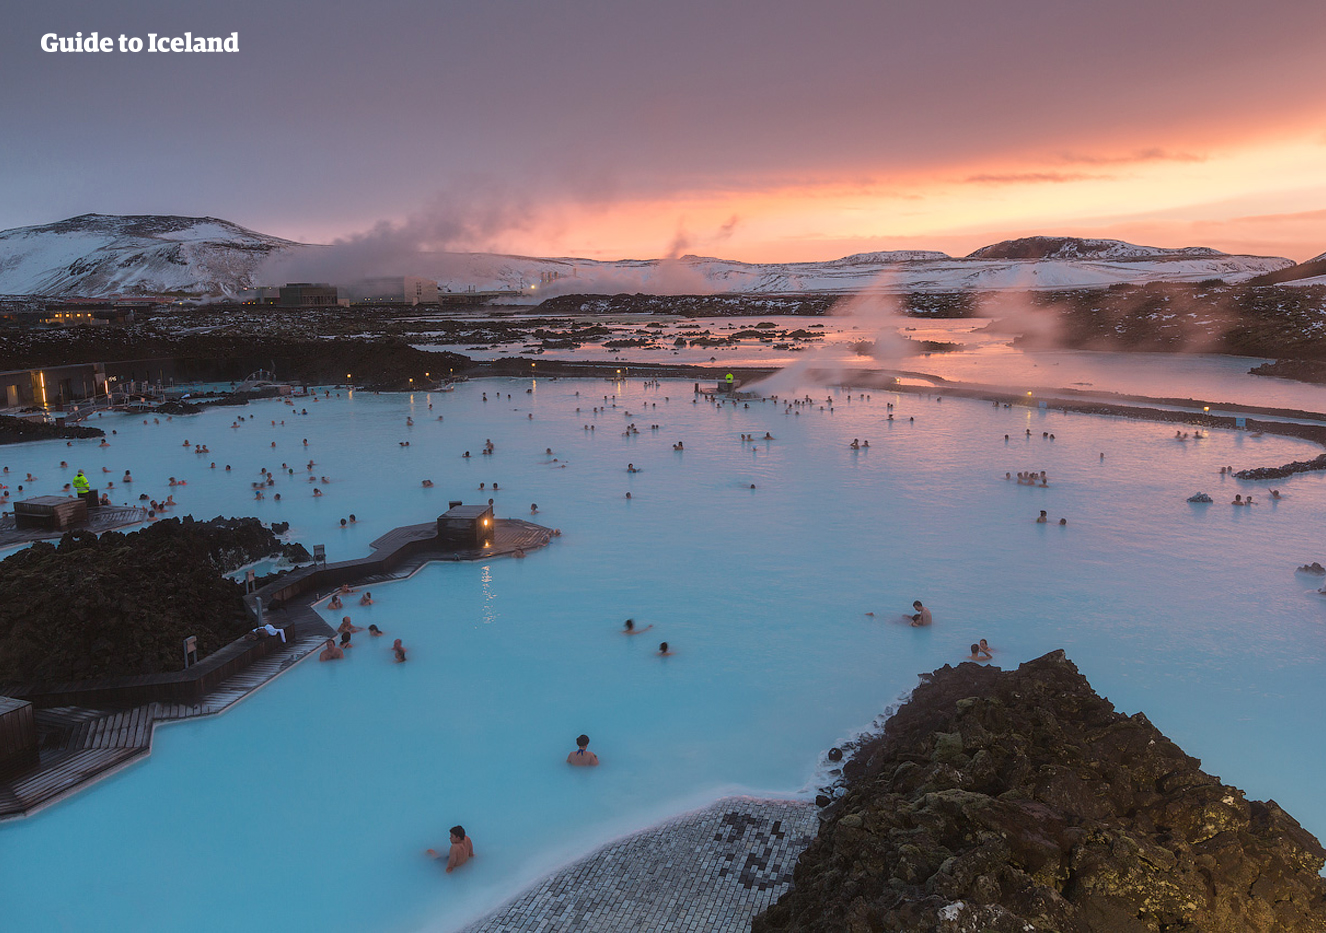 The Blue Lagoon is a pool, spa and treatment centre on the Reykjanes Peninsula, open to visitors throughout the year.